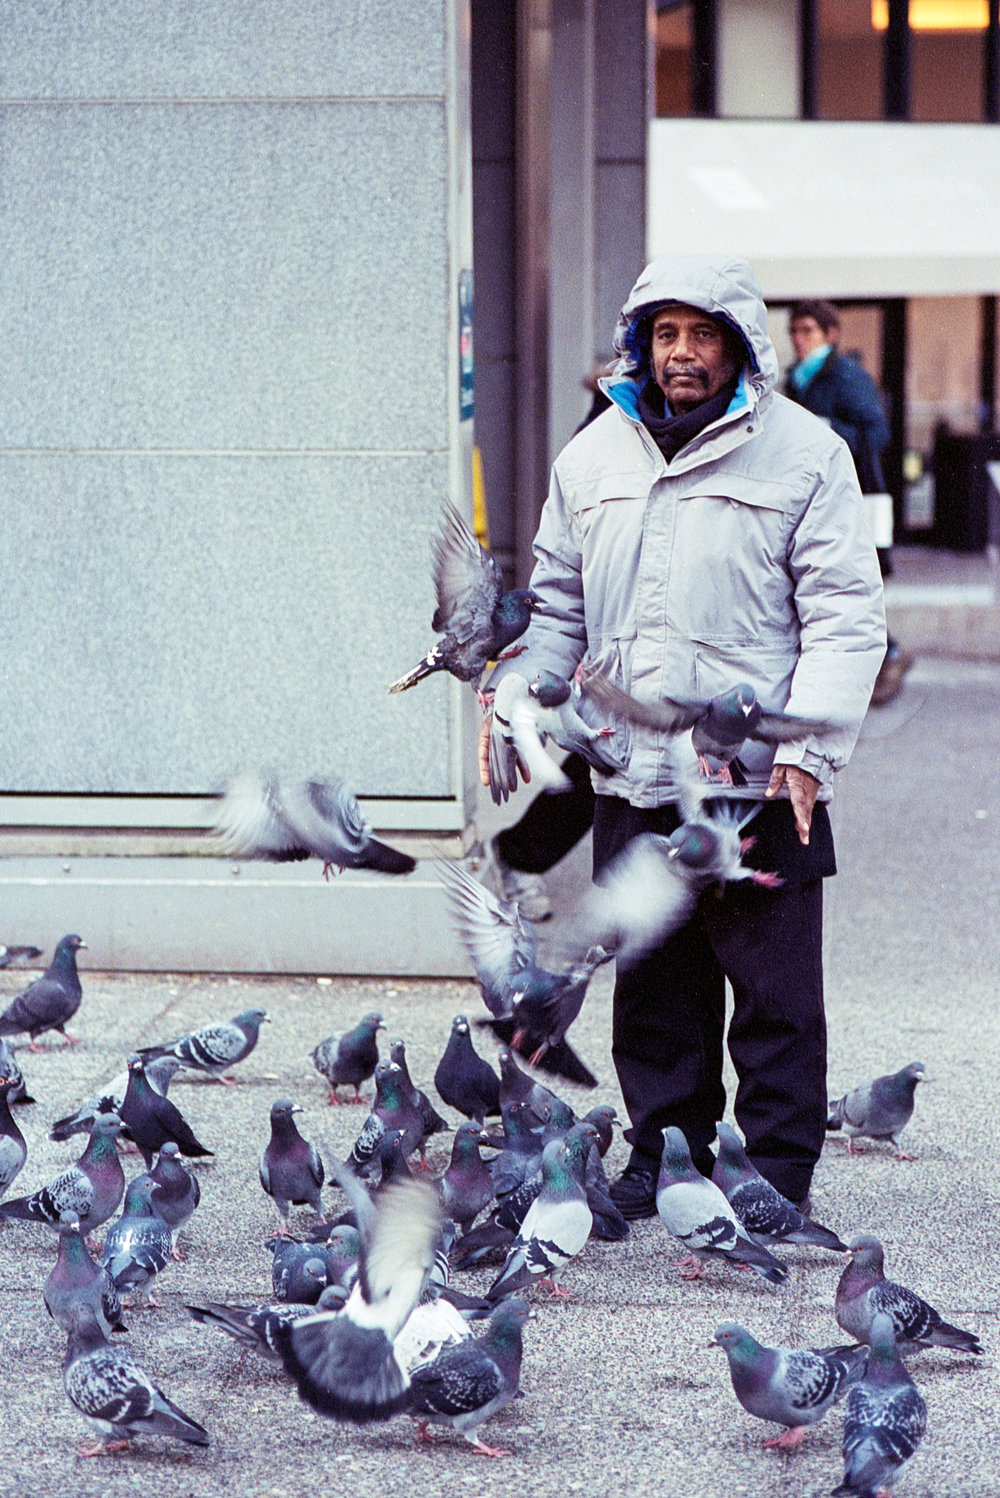 Another man feeding the pigeons next to Vancouver City Centre station